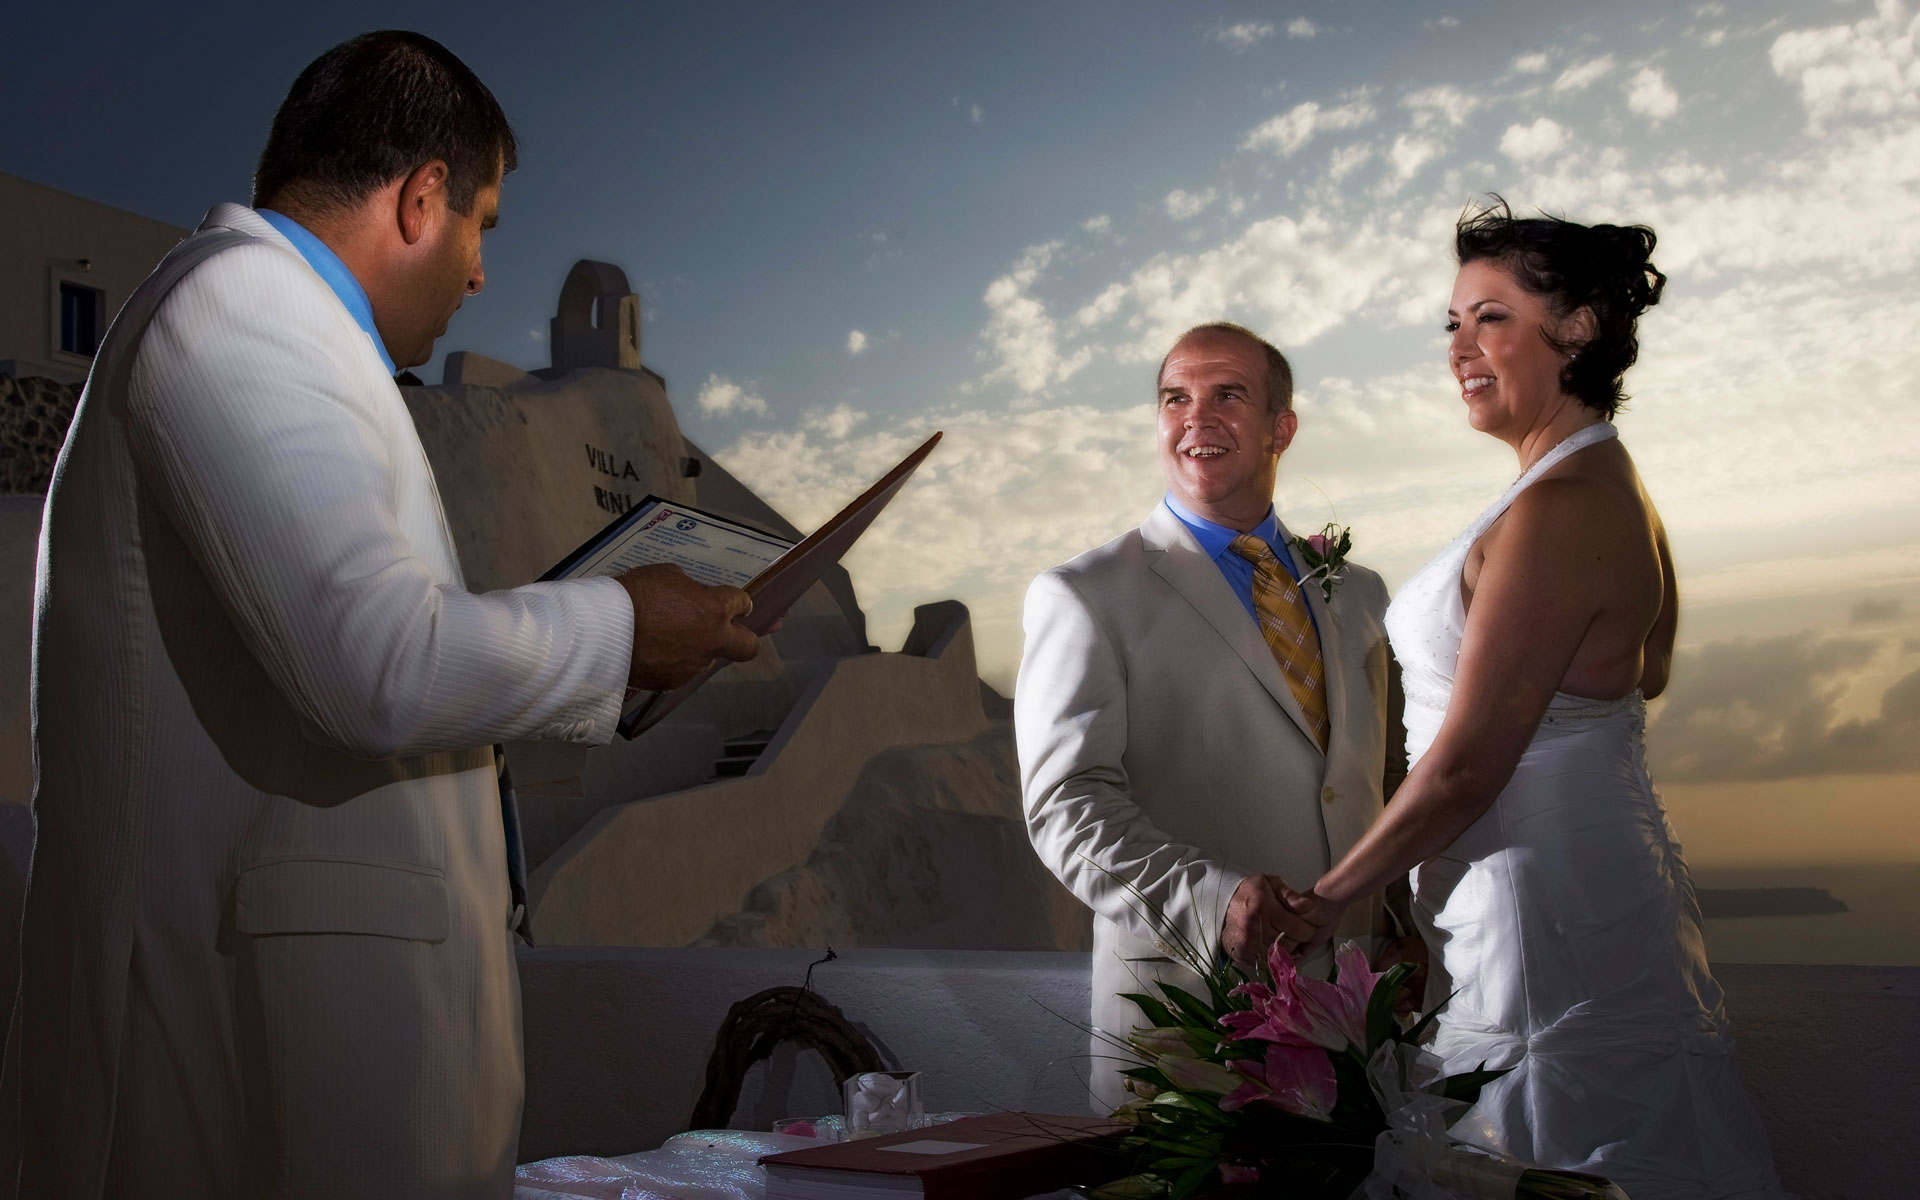 santorini wedding photography and video